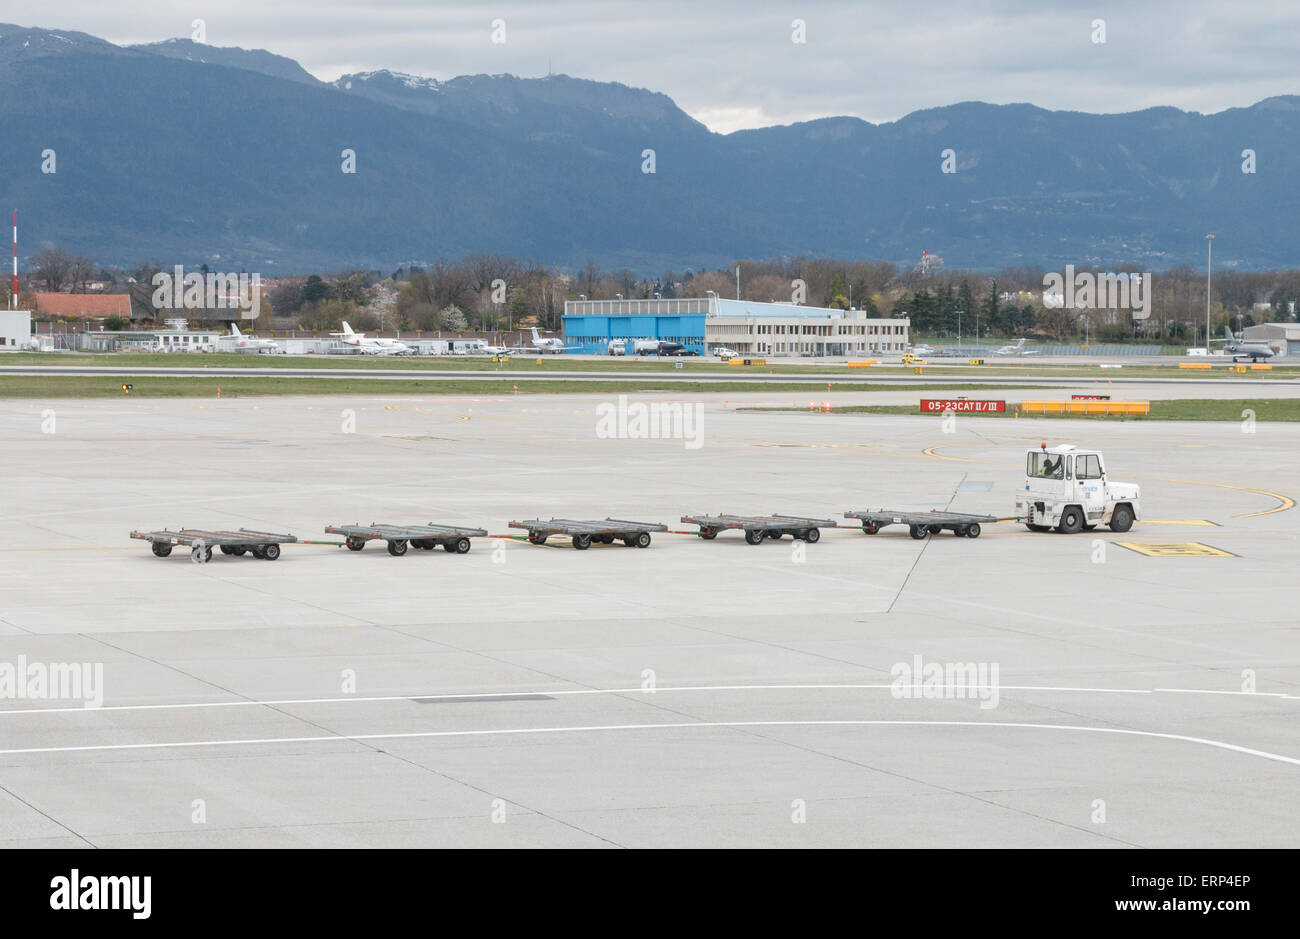 Empty baggage trolleys at Geneva airport being towed across the taxiway or apron.  Concept lost or missing luggage - Stock Image